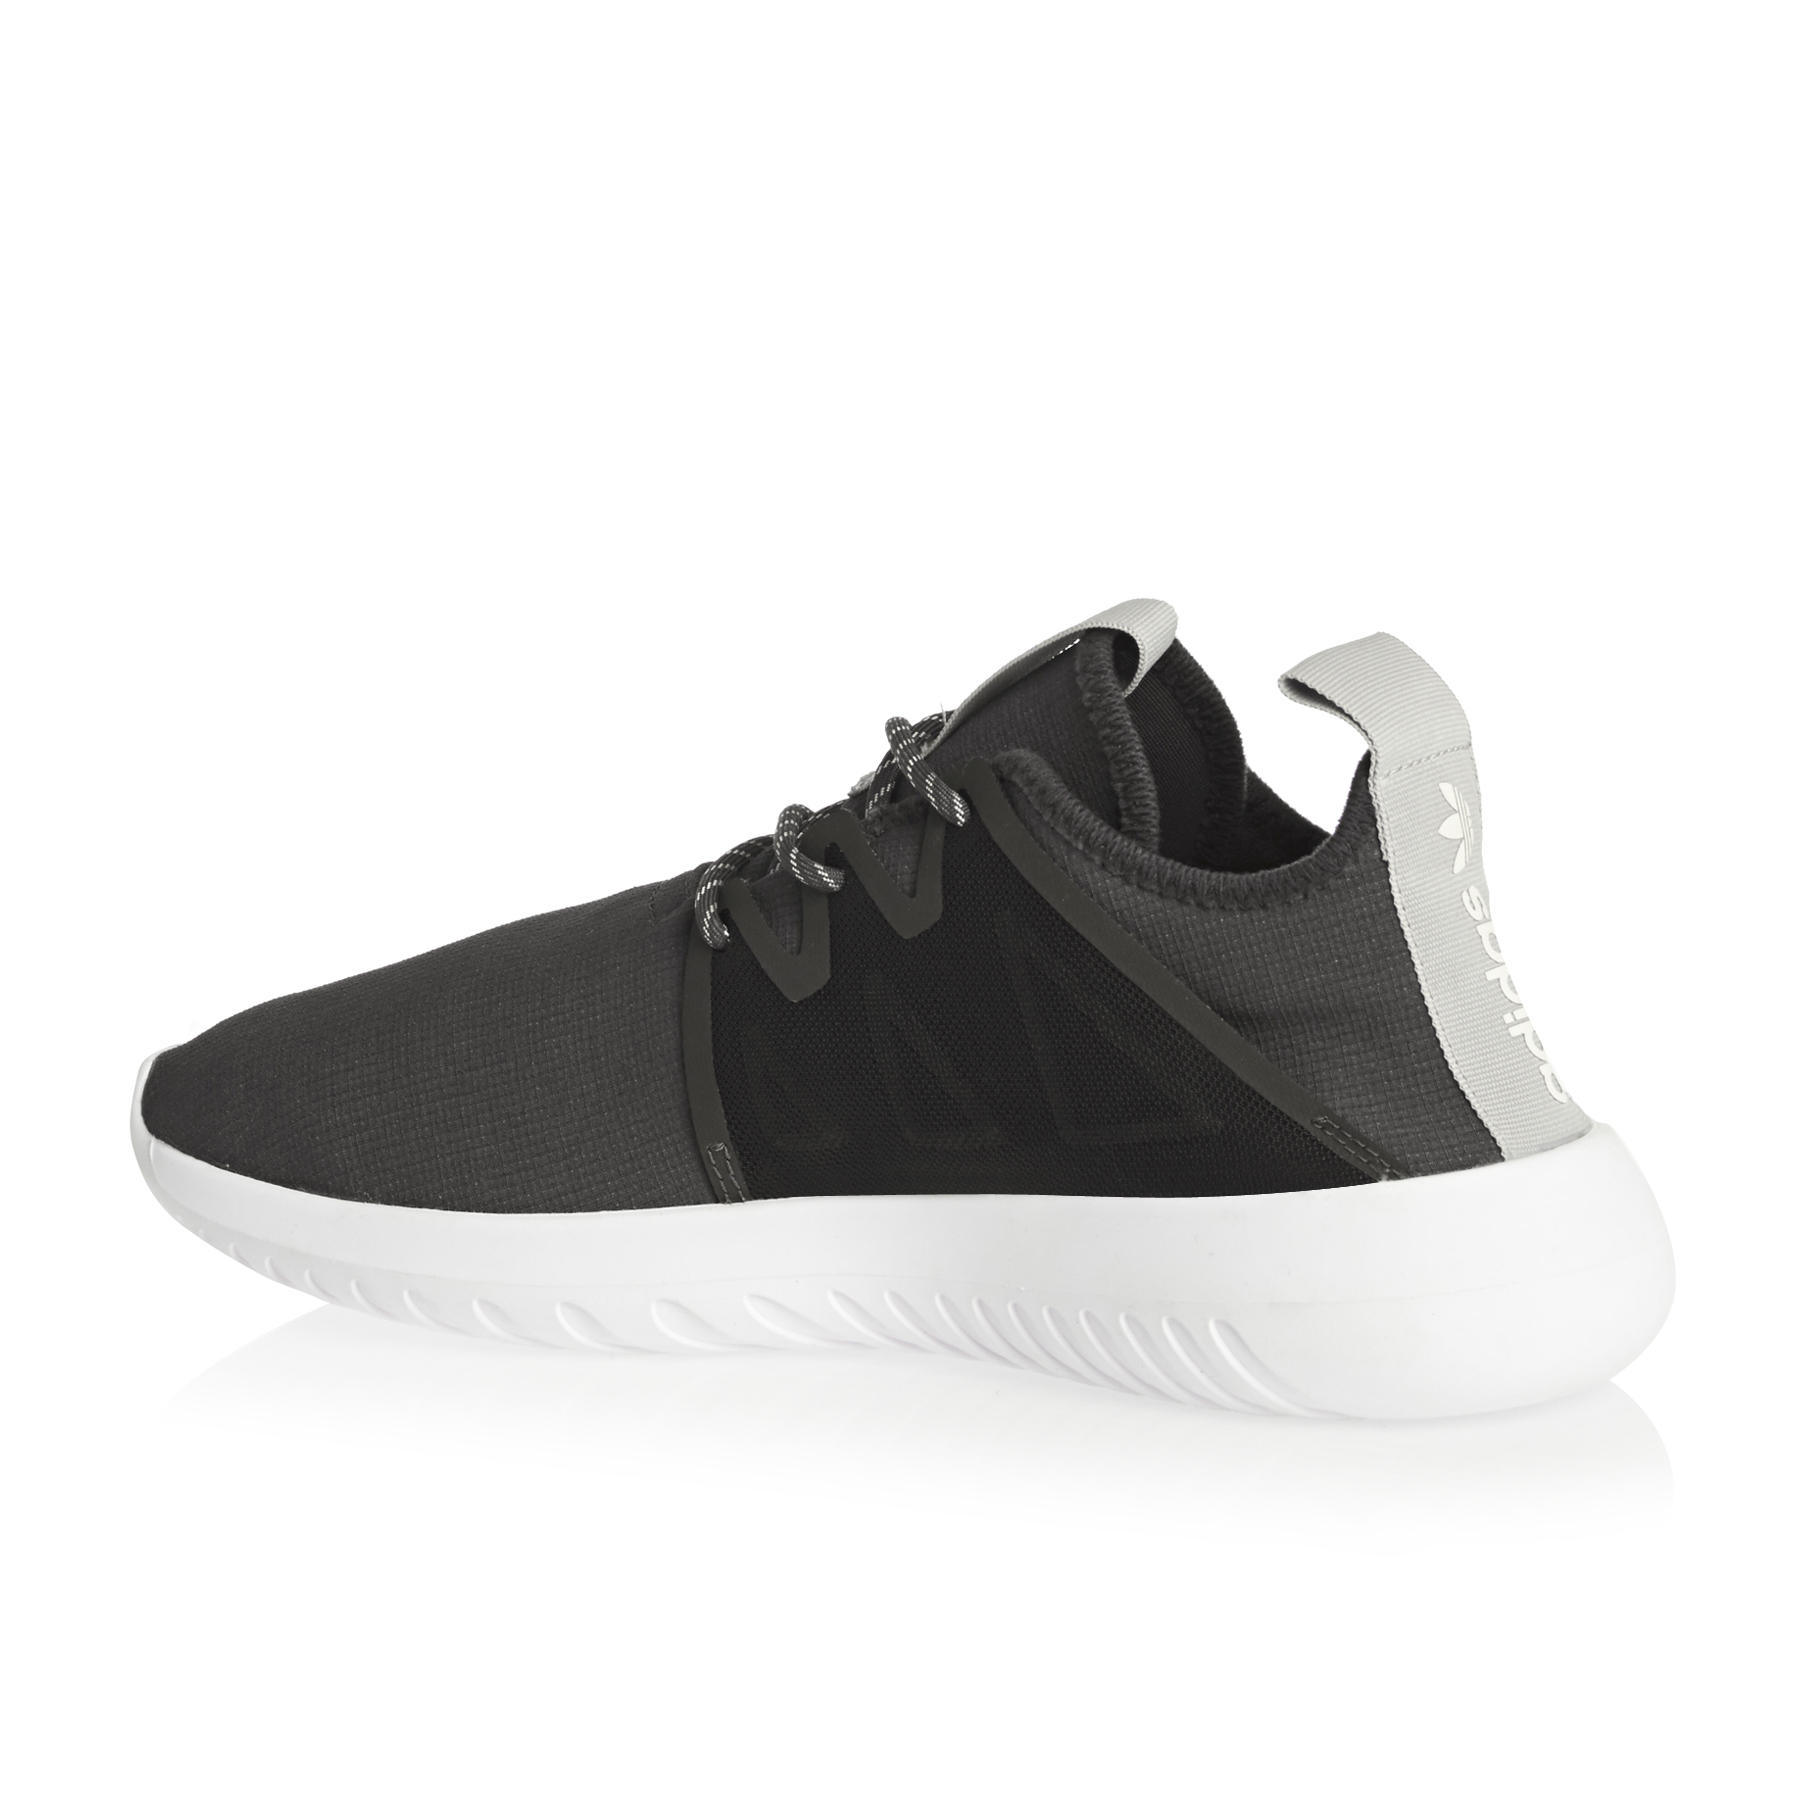 Adidas Originals Tubular Viral Womens Shoes Free Delivery